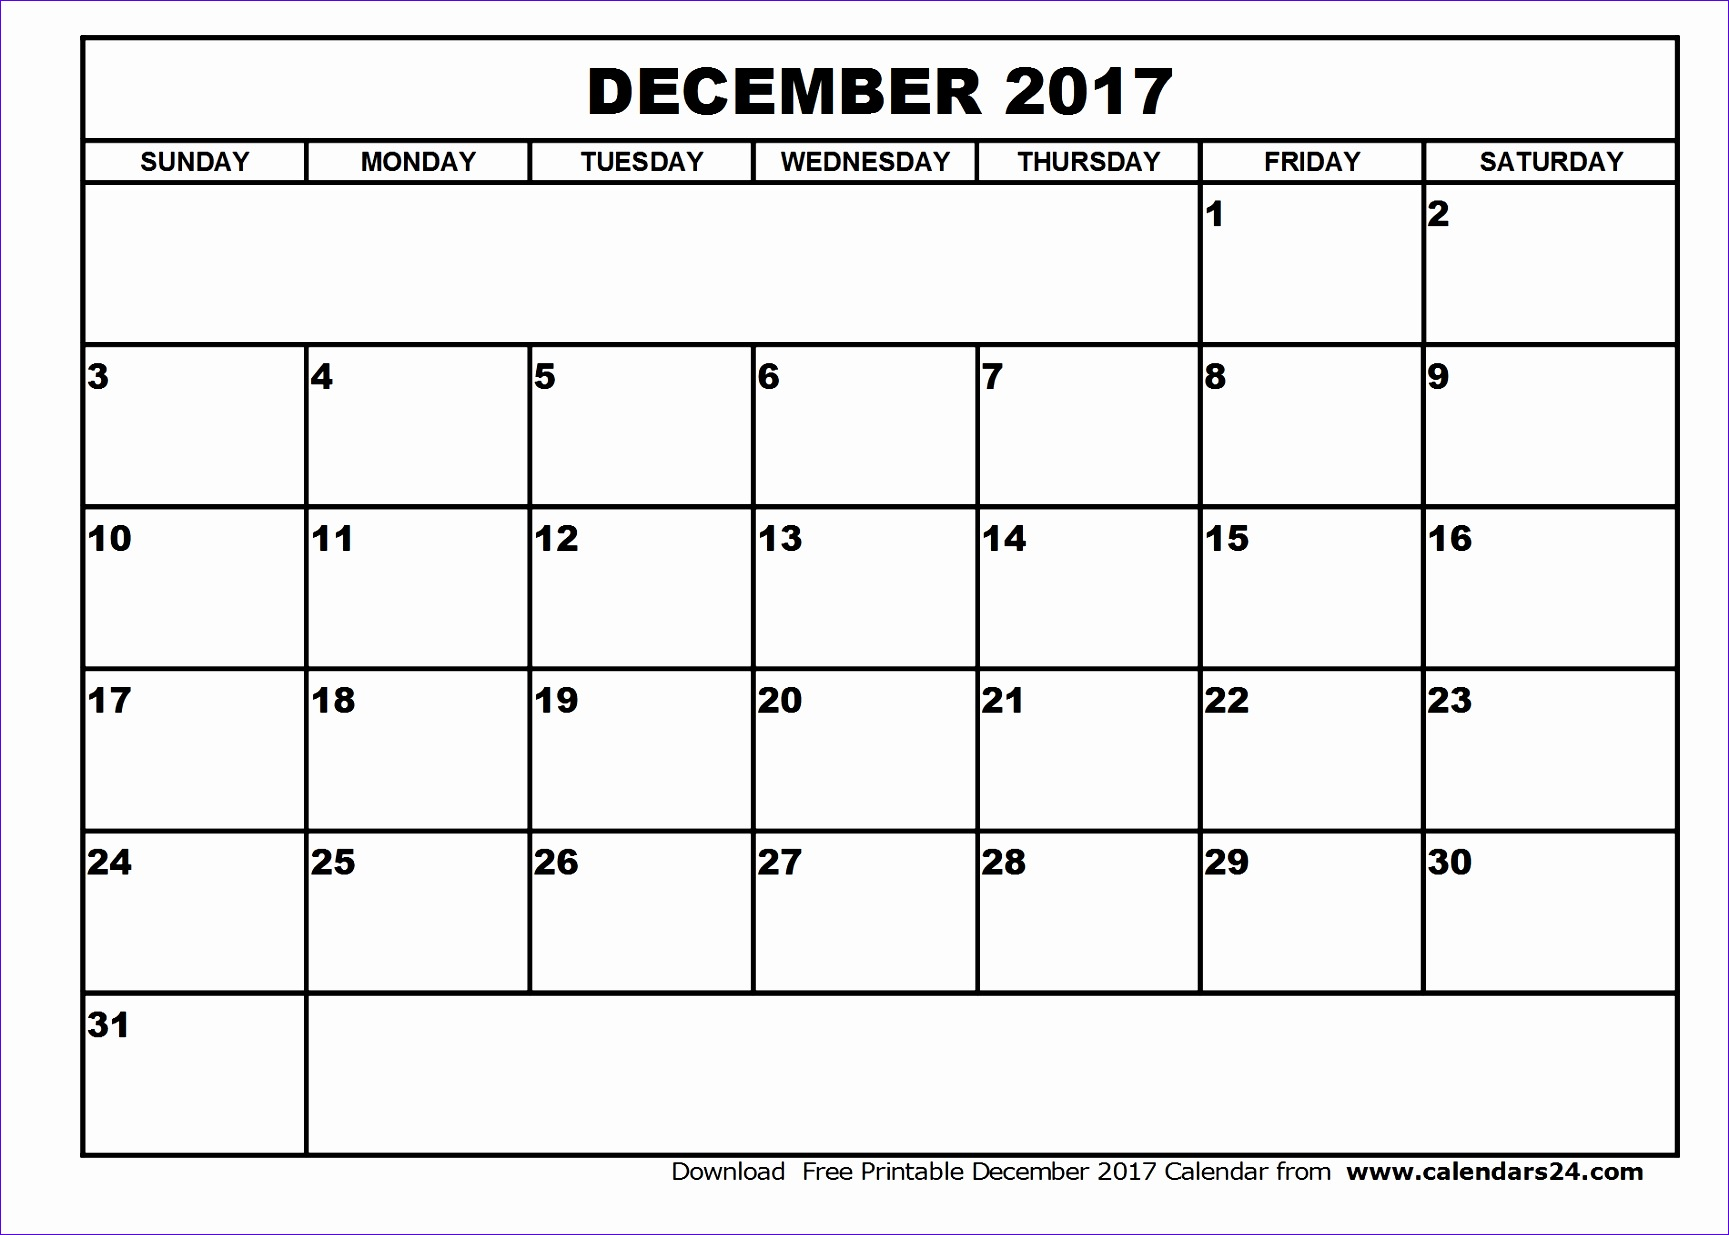 Excel Weekly Schedule Template Jcfdv Beautiful December 2017 Calendar 19001343